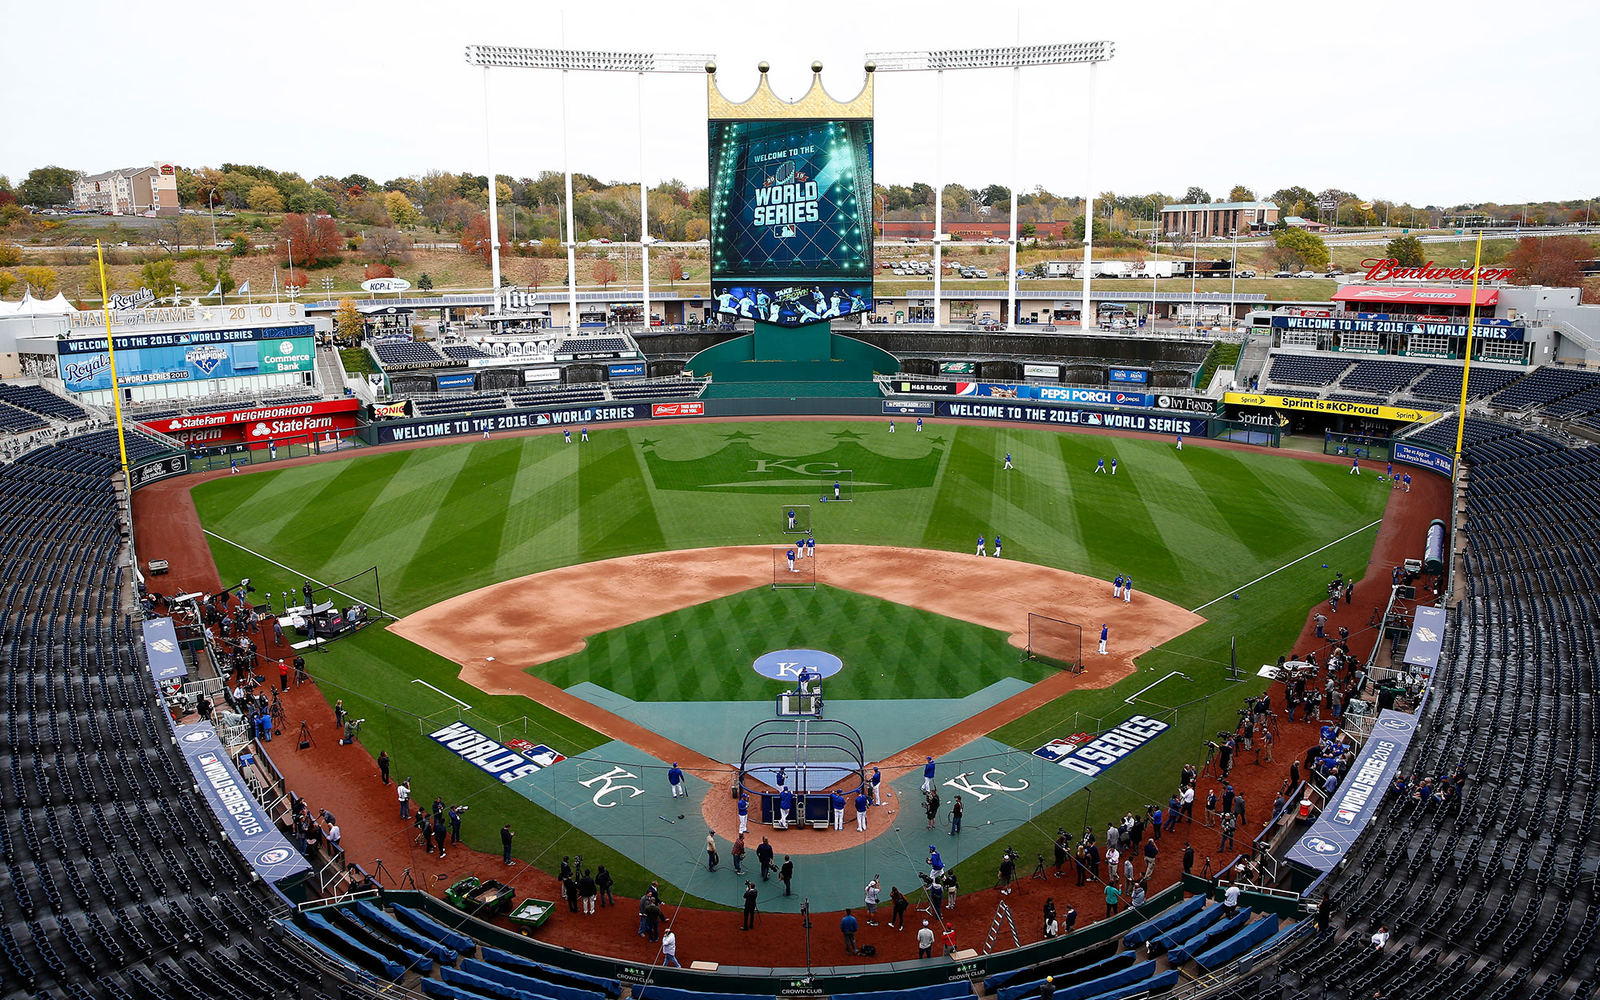 Kauffman Stadium: Kansas City Royals